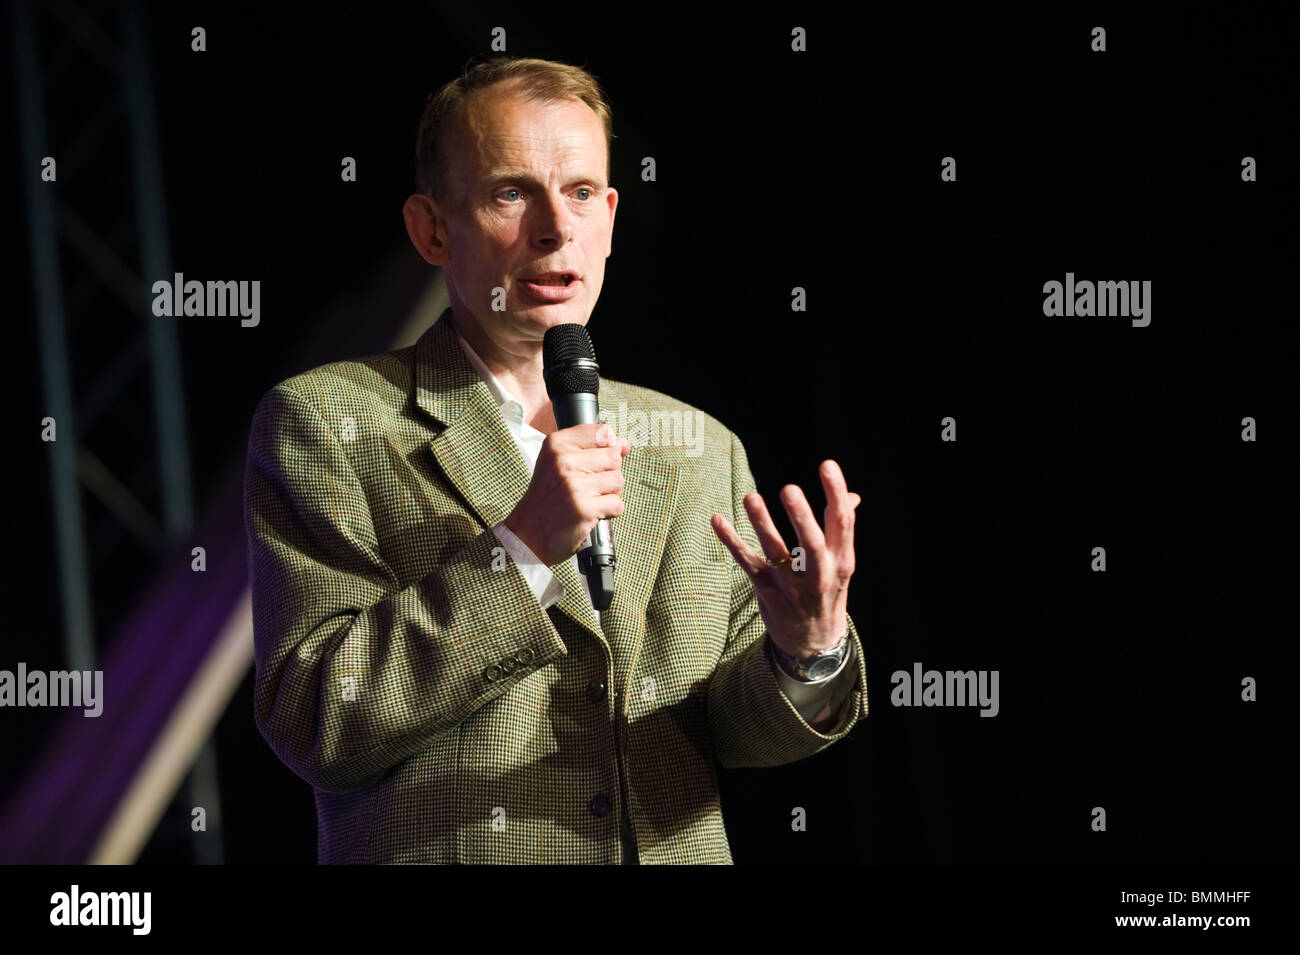 Andrew Marr BBC political journalist pictured speaking on stage at Hay Festival 2010 Hay on Wye Powys Wales UK - Stock Image